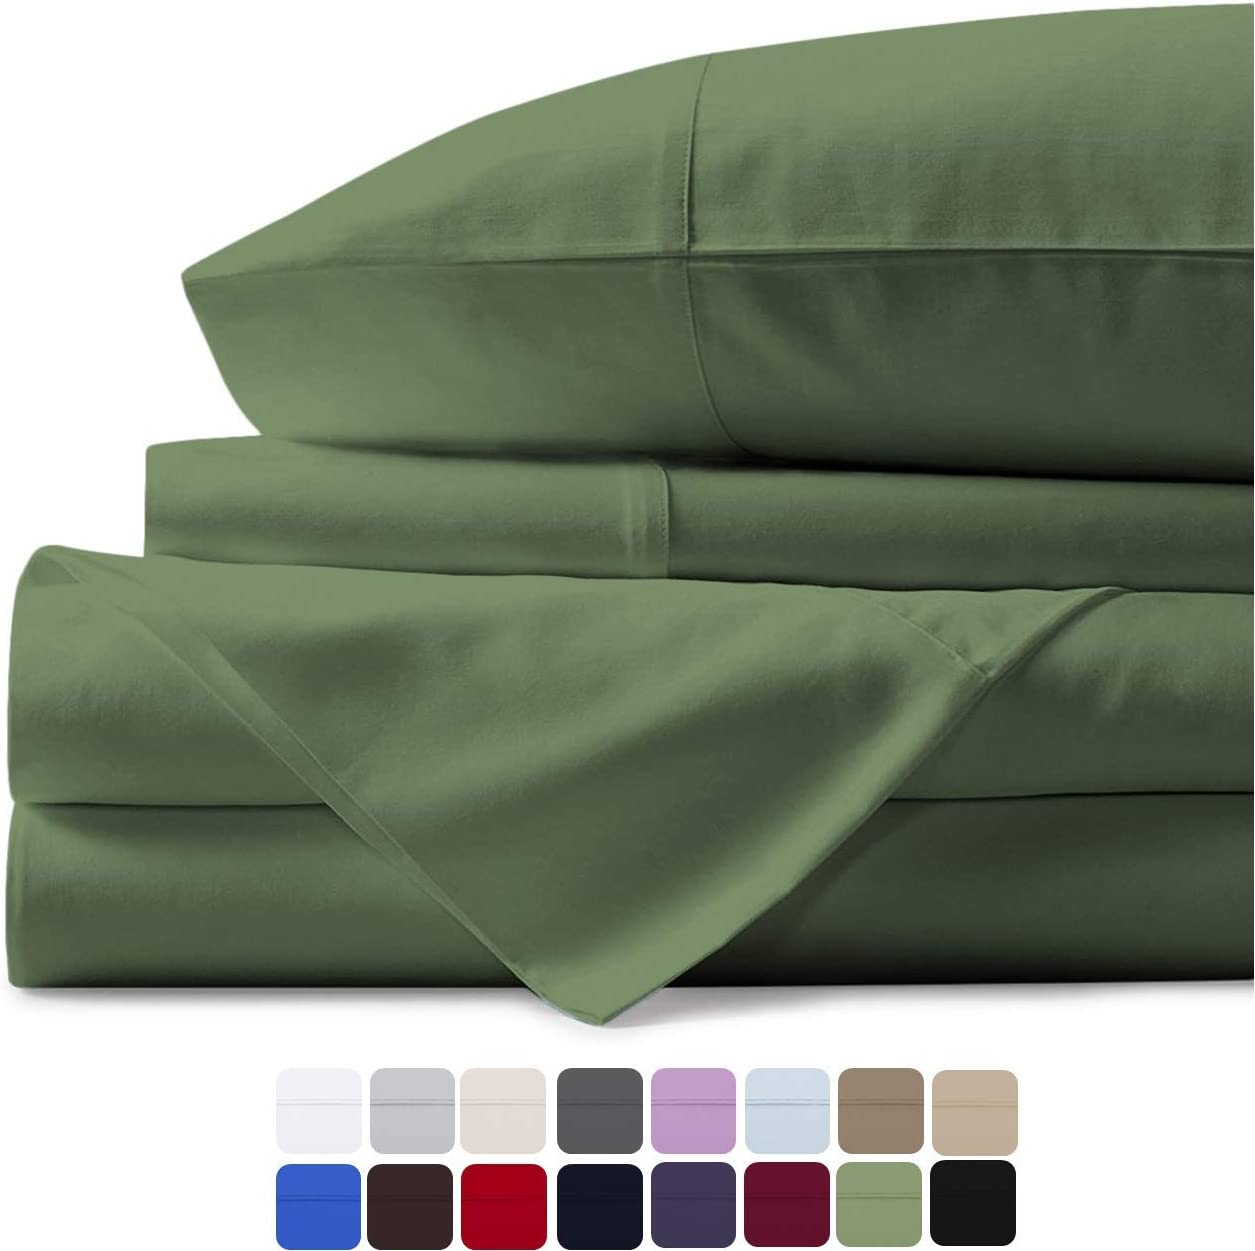 500 Thread Count 100% Cotton Sheet Sage Green Twin XL Sheet Set,3-Piece Long-staple Combed Sheets,Breathable,Soft & Silky Sateen Weave Fits Mattress Upto 18'' Deep Pocket – 1 BONUS PILLOWCASE